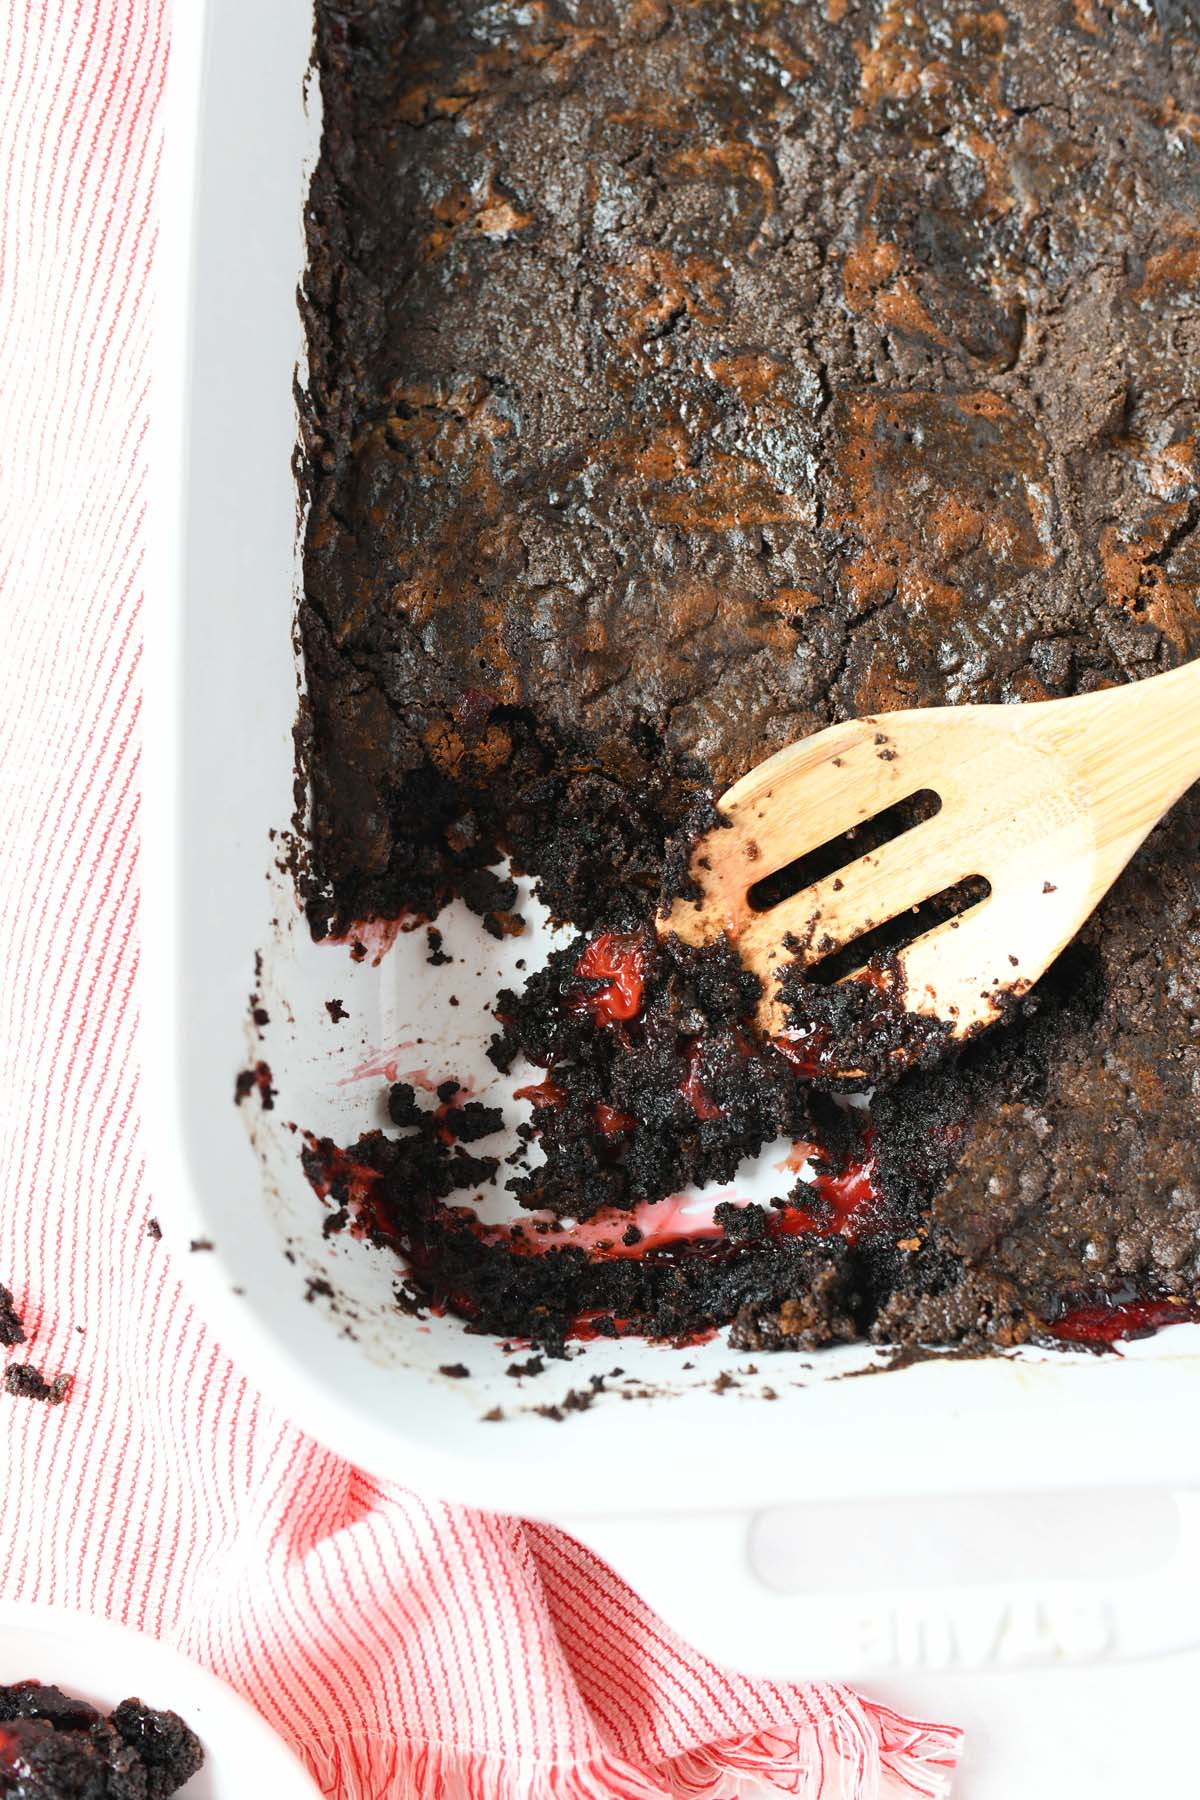 Chocolate Cherry Dump Cake with a wooden spoon.